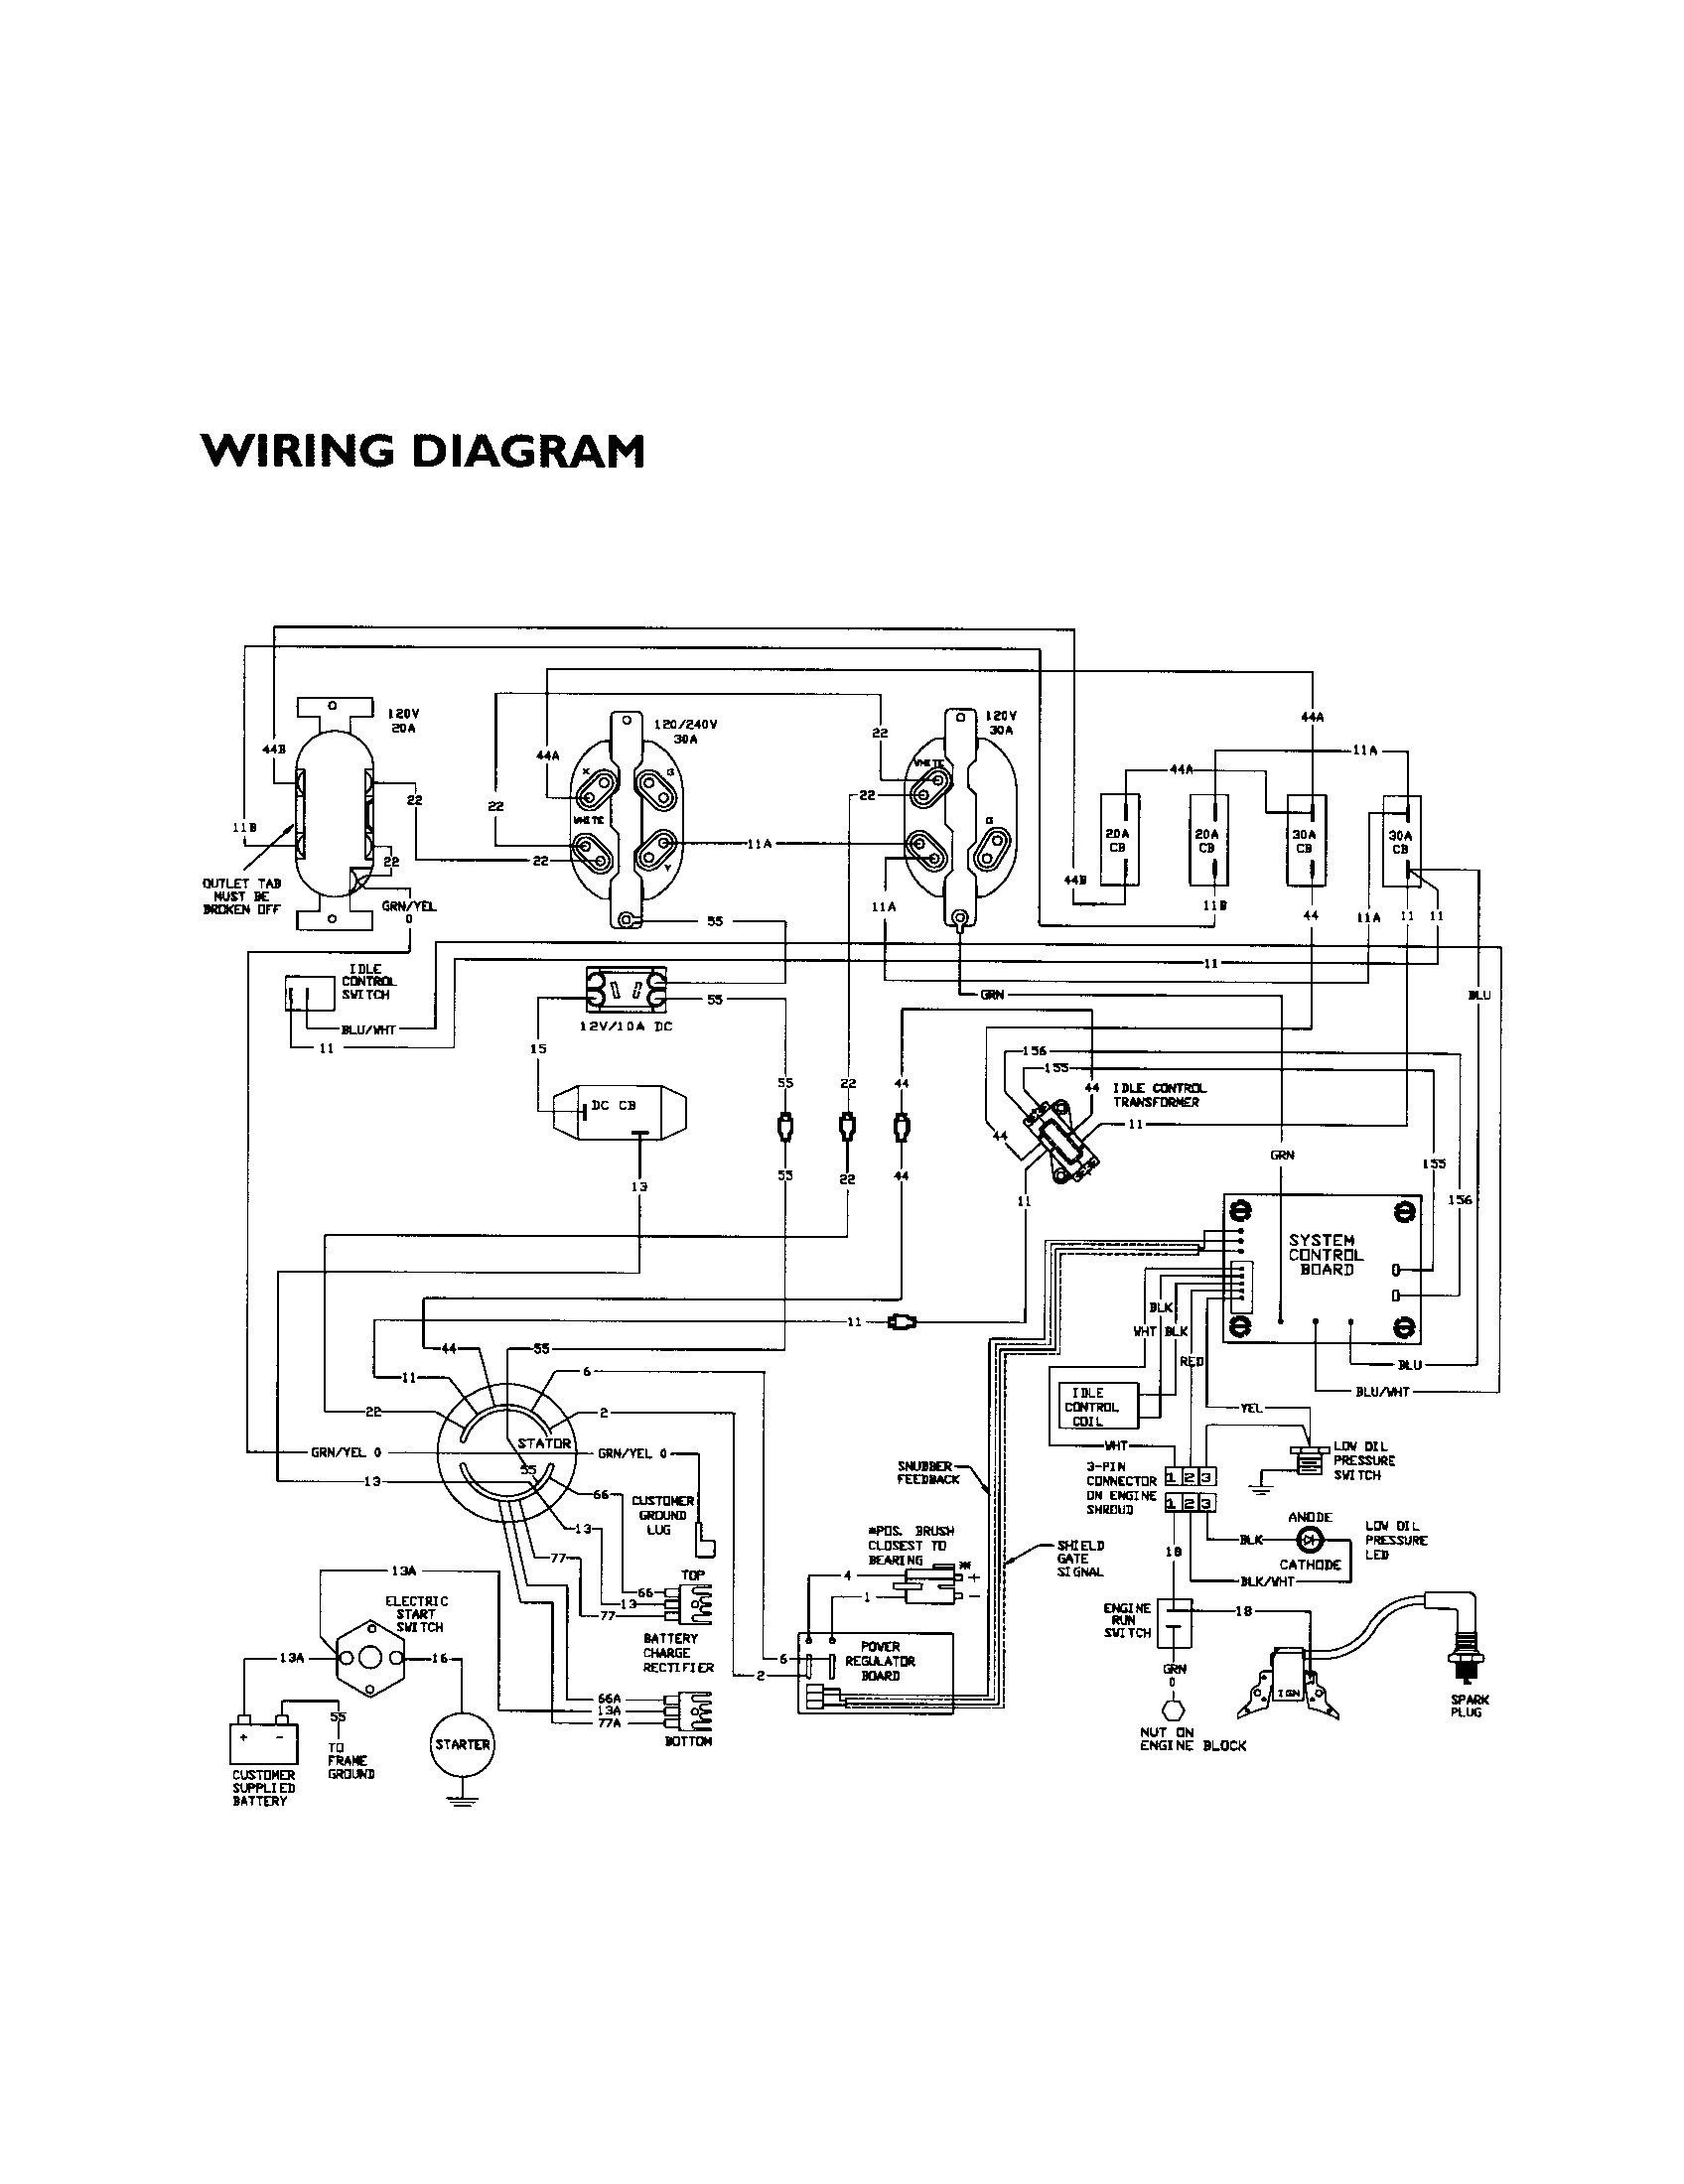 House Wiring Diagram Light Switch